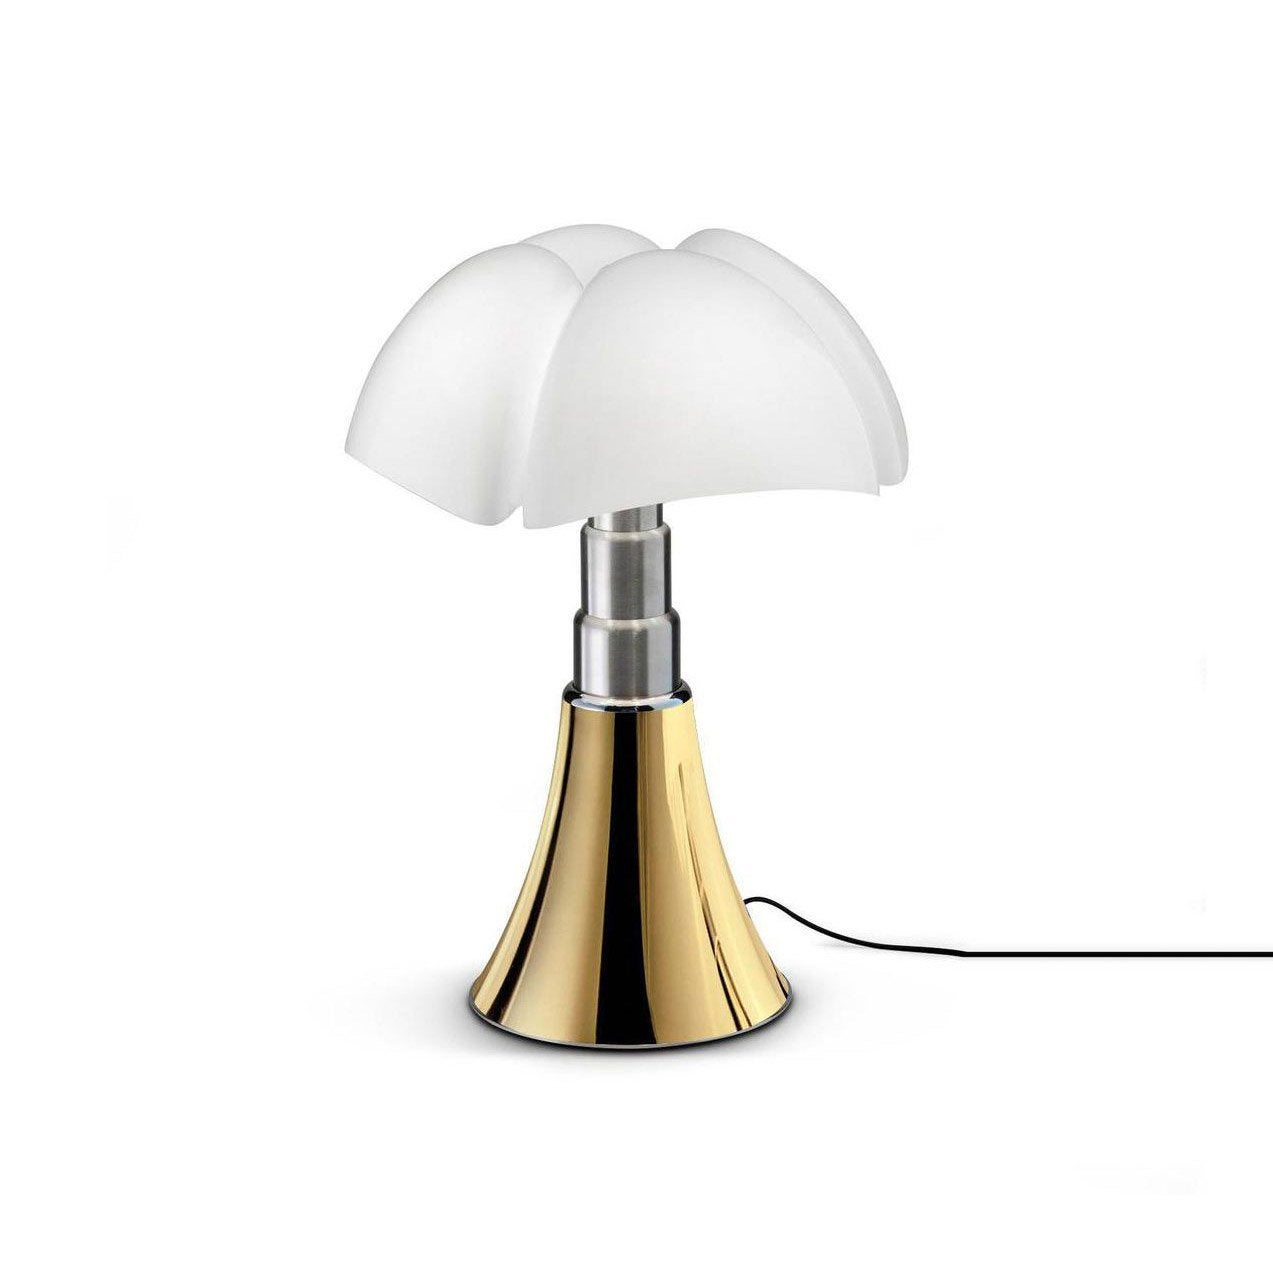 Lampe design Mini Pipistrello touch doré, ampoule LED integrée, H.35cm